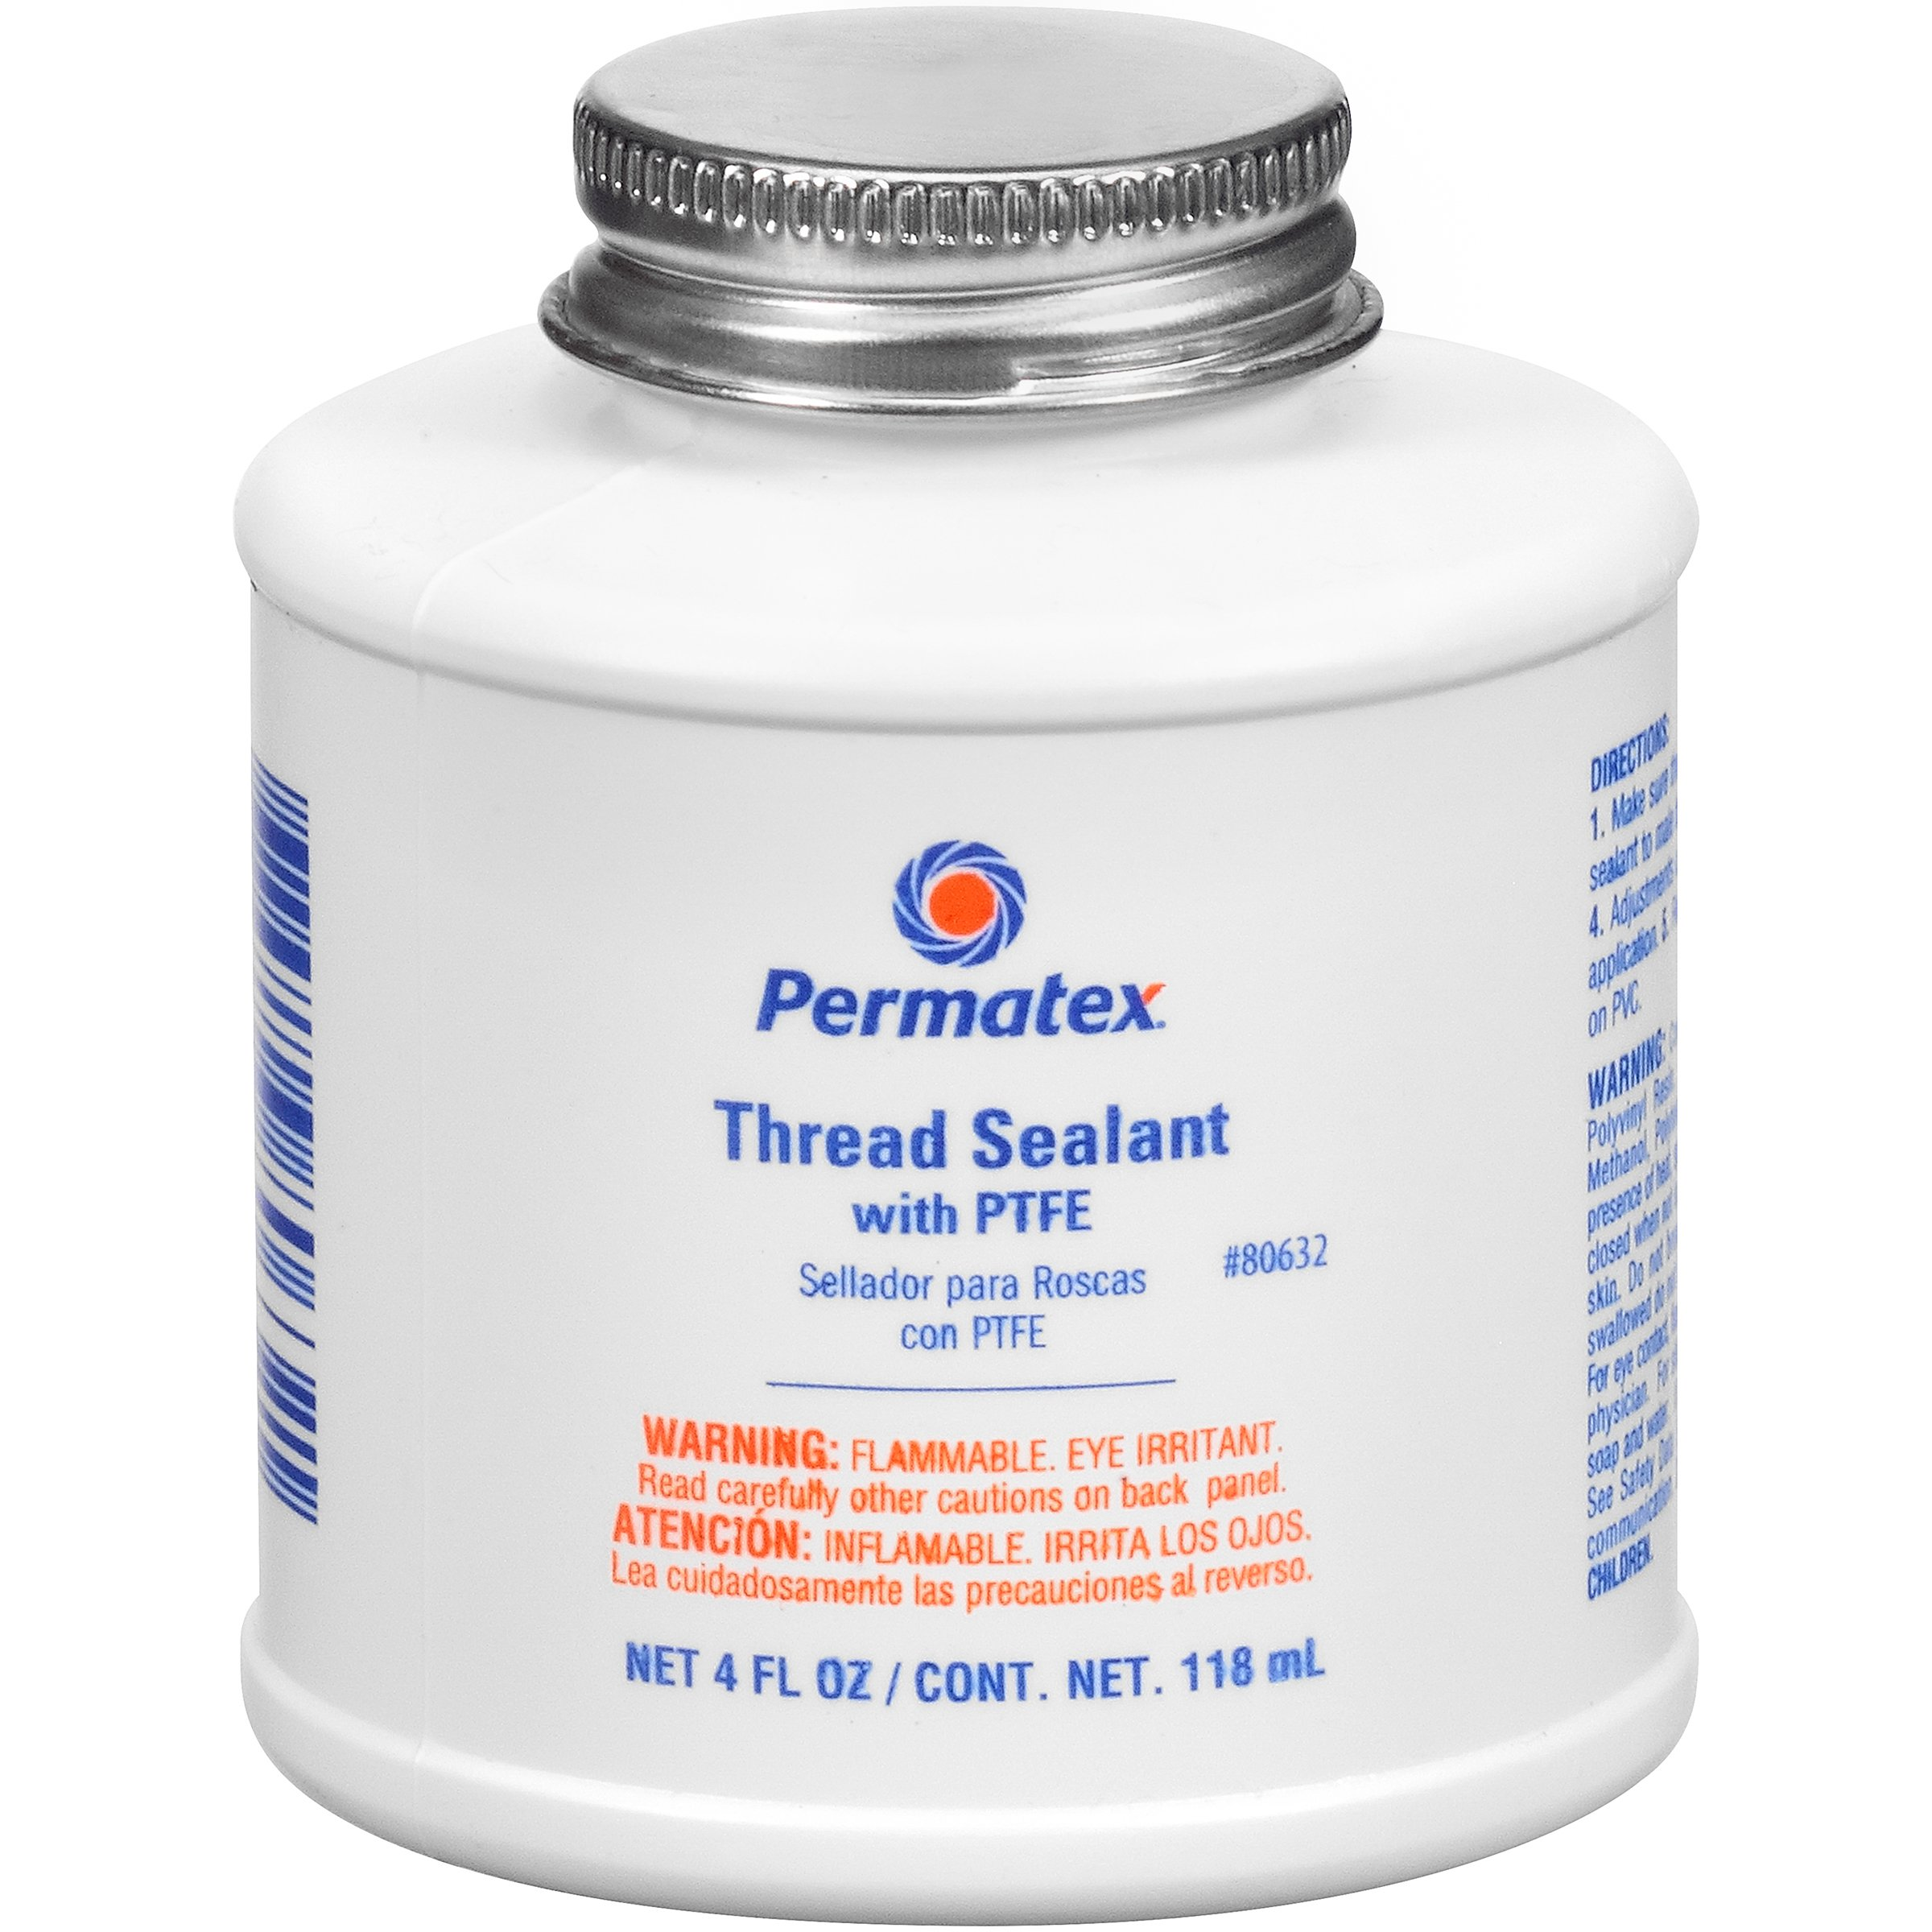 Permatex 80632 Thread Sealant with PTFE, 4 oz. product image